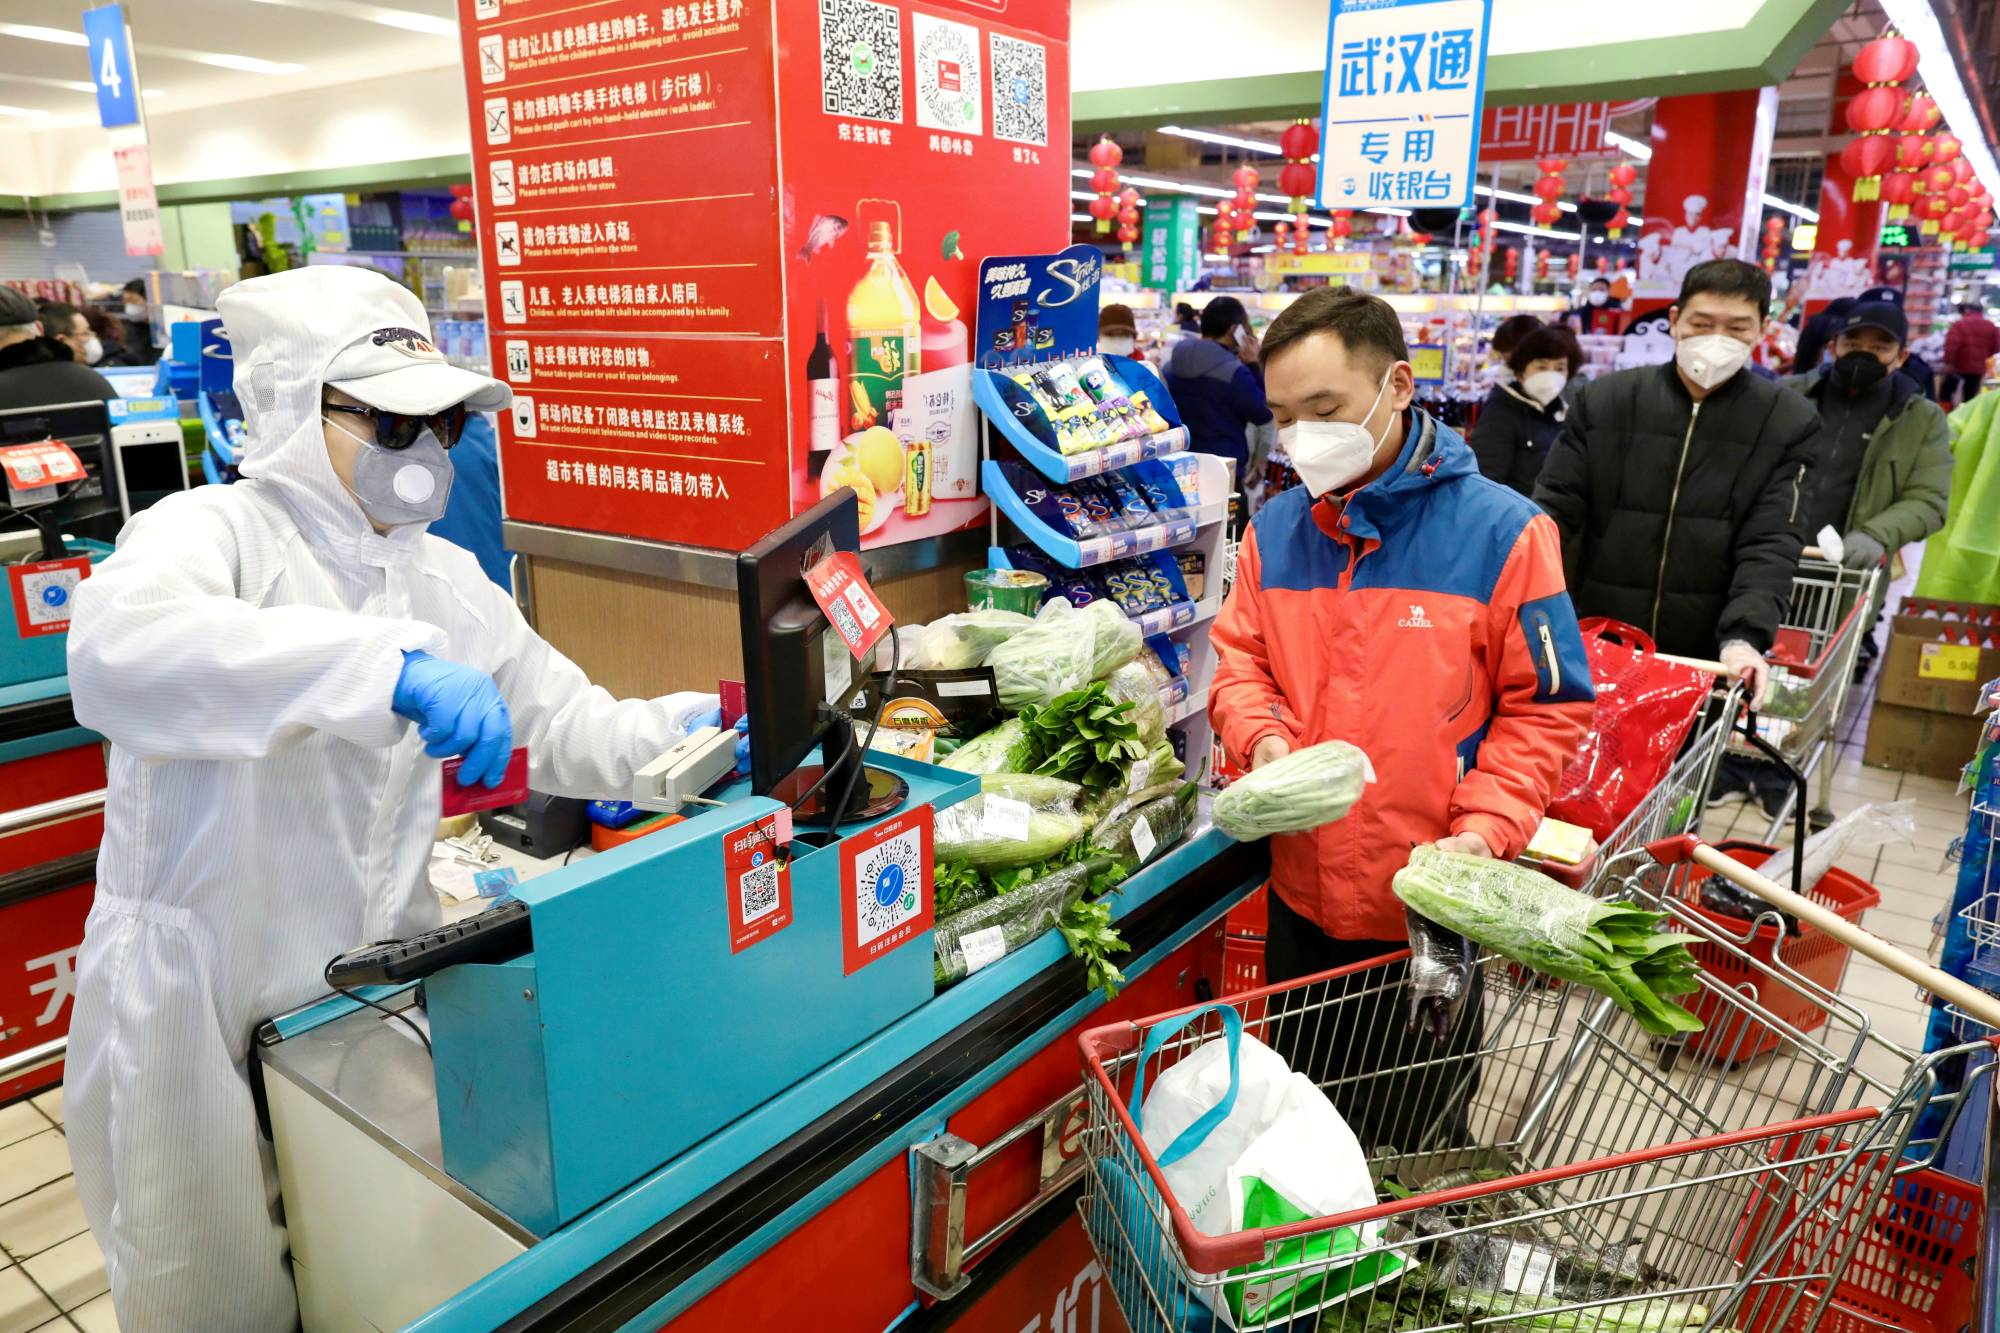 A worker in protective suit serves customers at a supermarket following the outbreak of the novel coronavirus in Wuhan, China, in February last year. | CHINA DAILY / VIA REUTERS